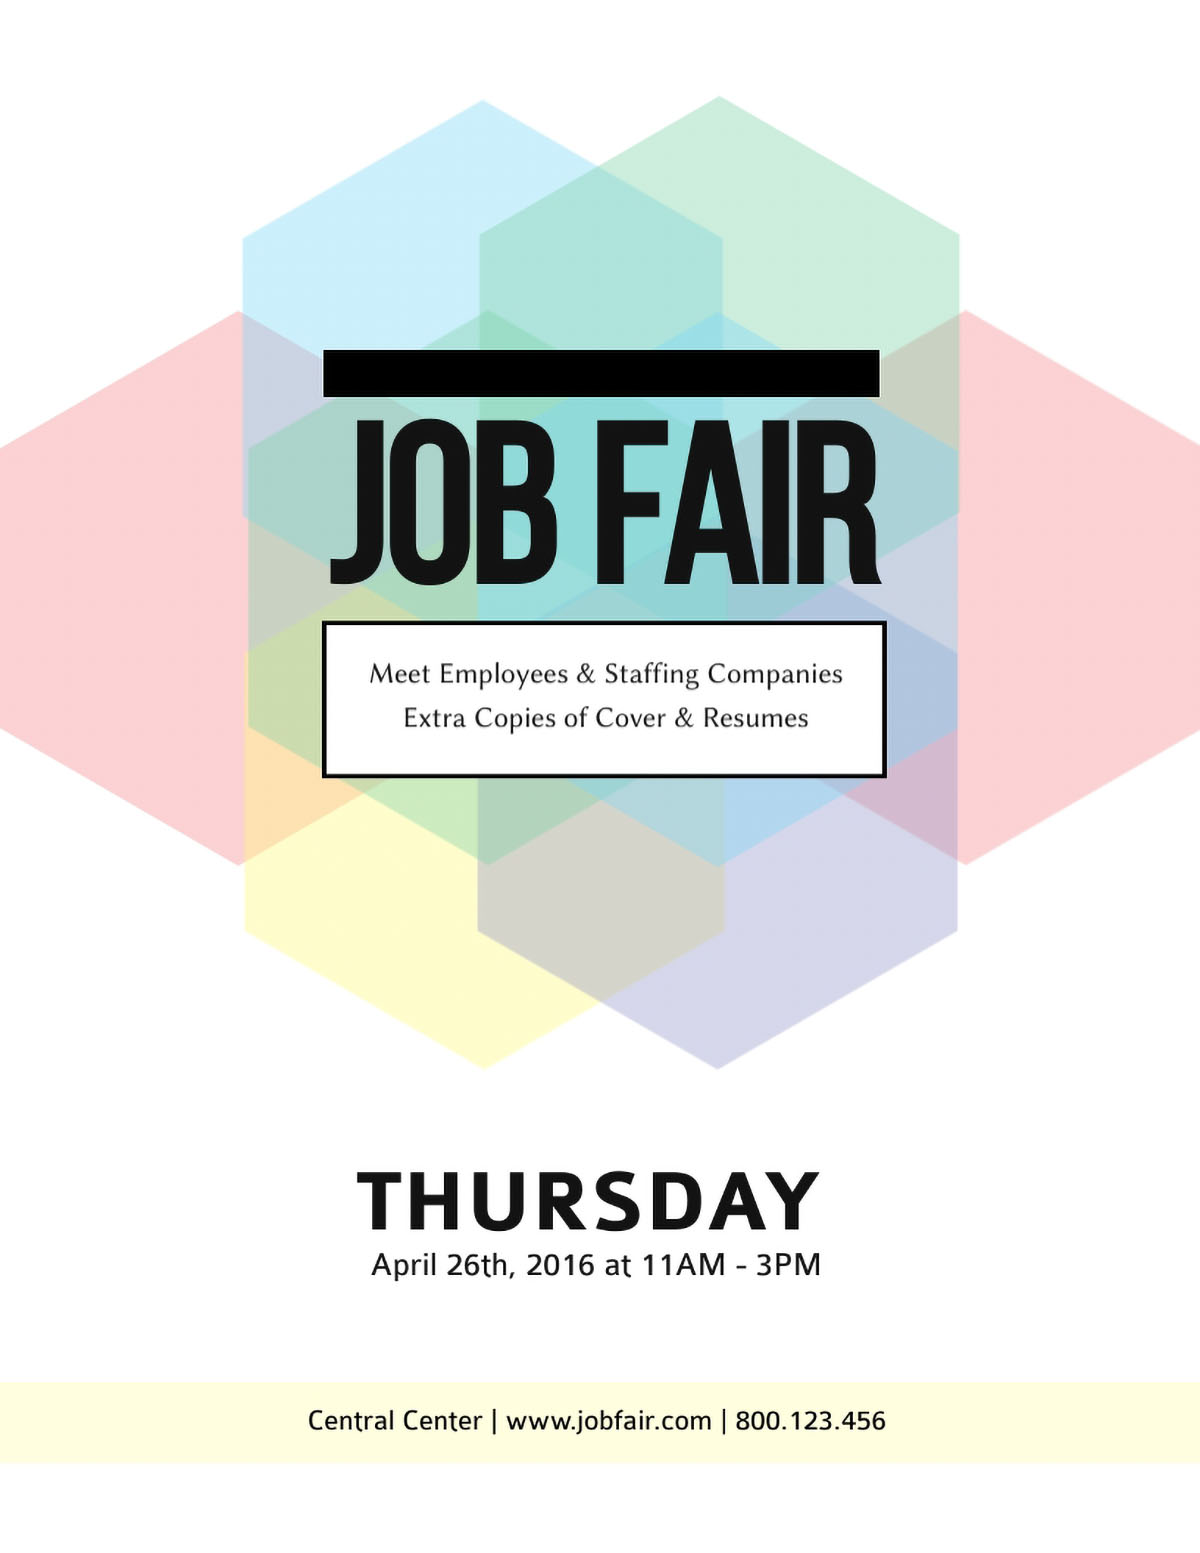 flyer design - job fair flyer template